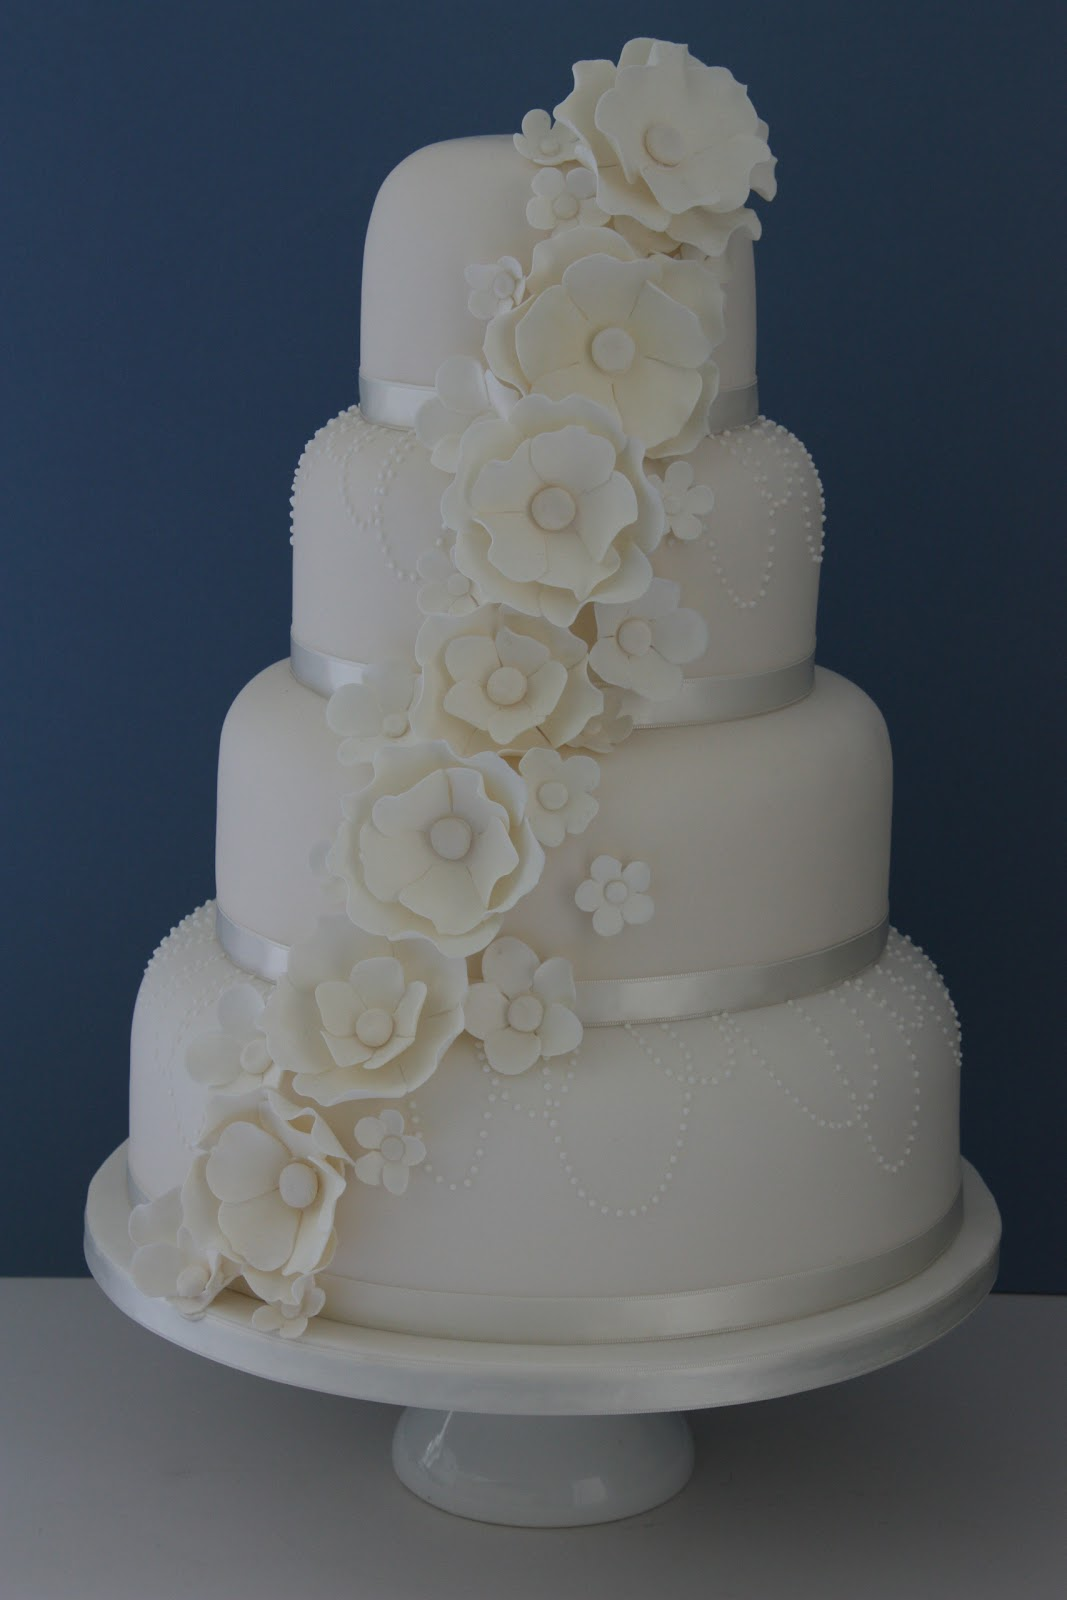 Tiers & Tiaras: Flowers and Pearls Wedding Cake